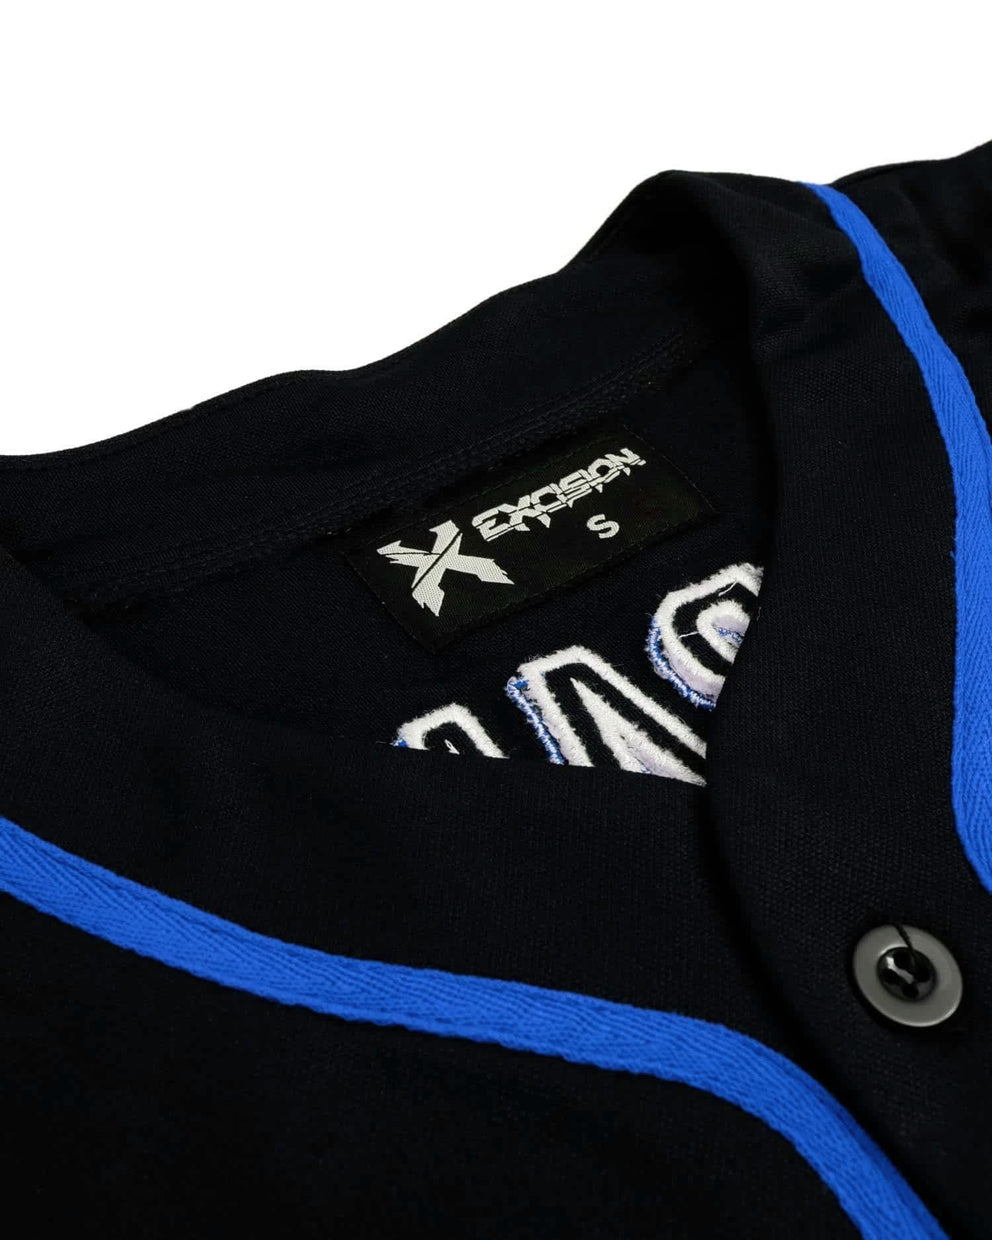 Excision Baseball Jersey - Black/Blue